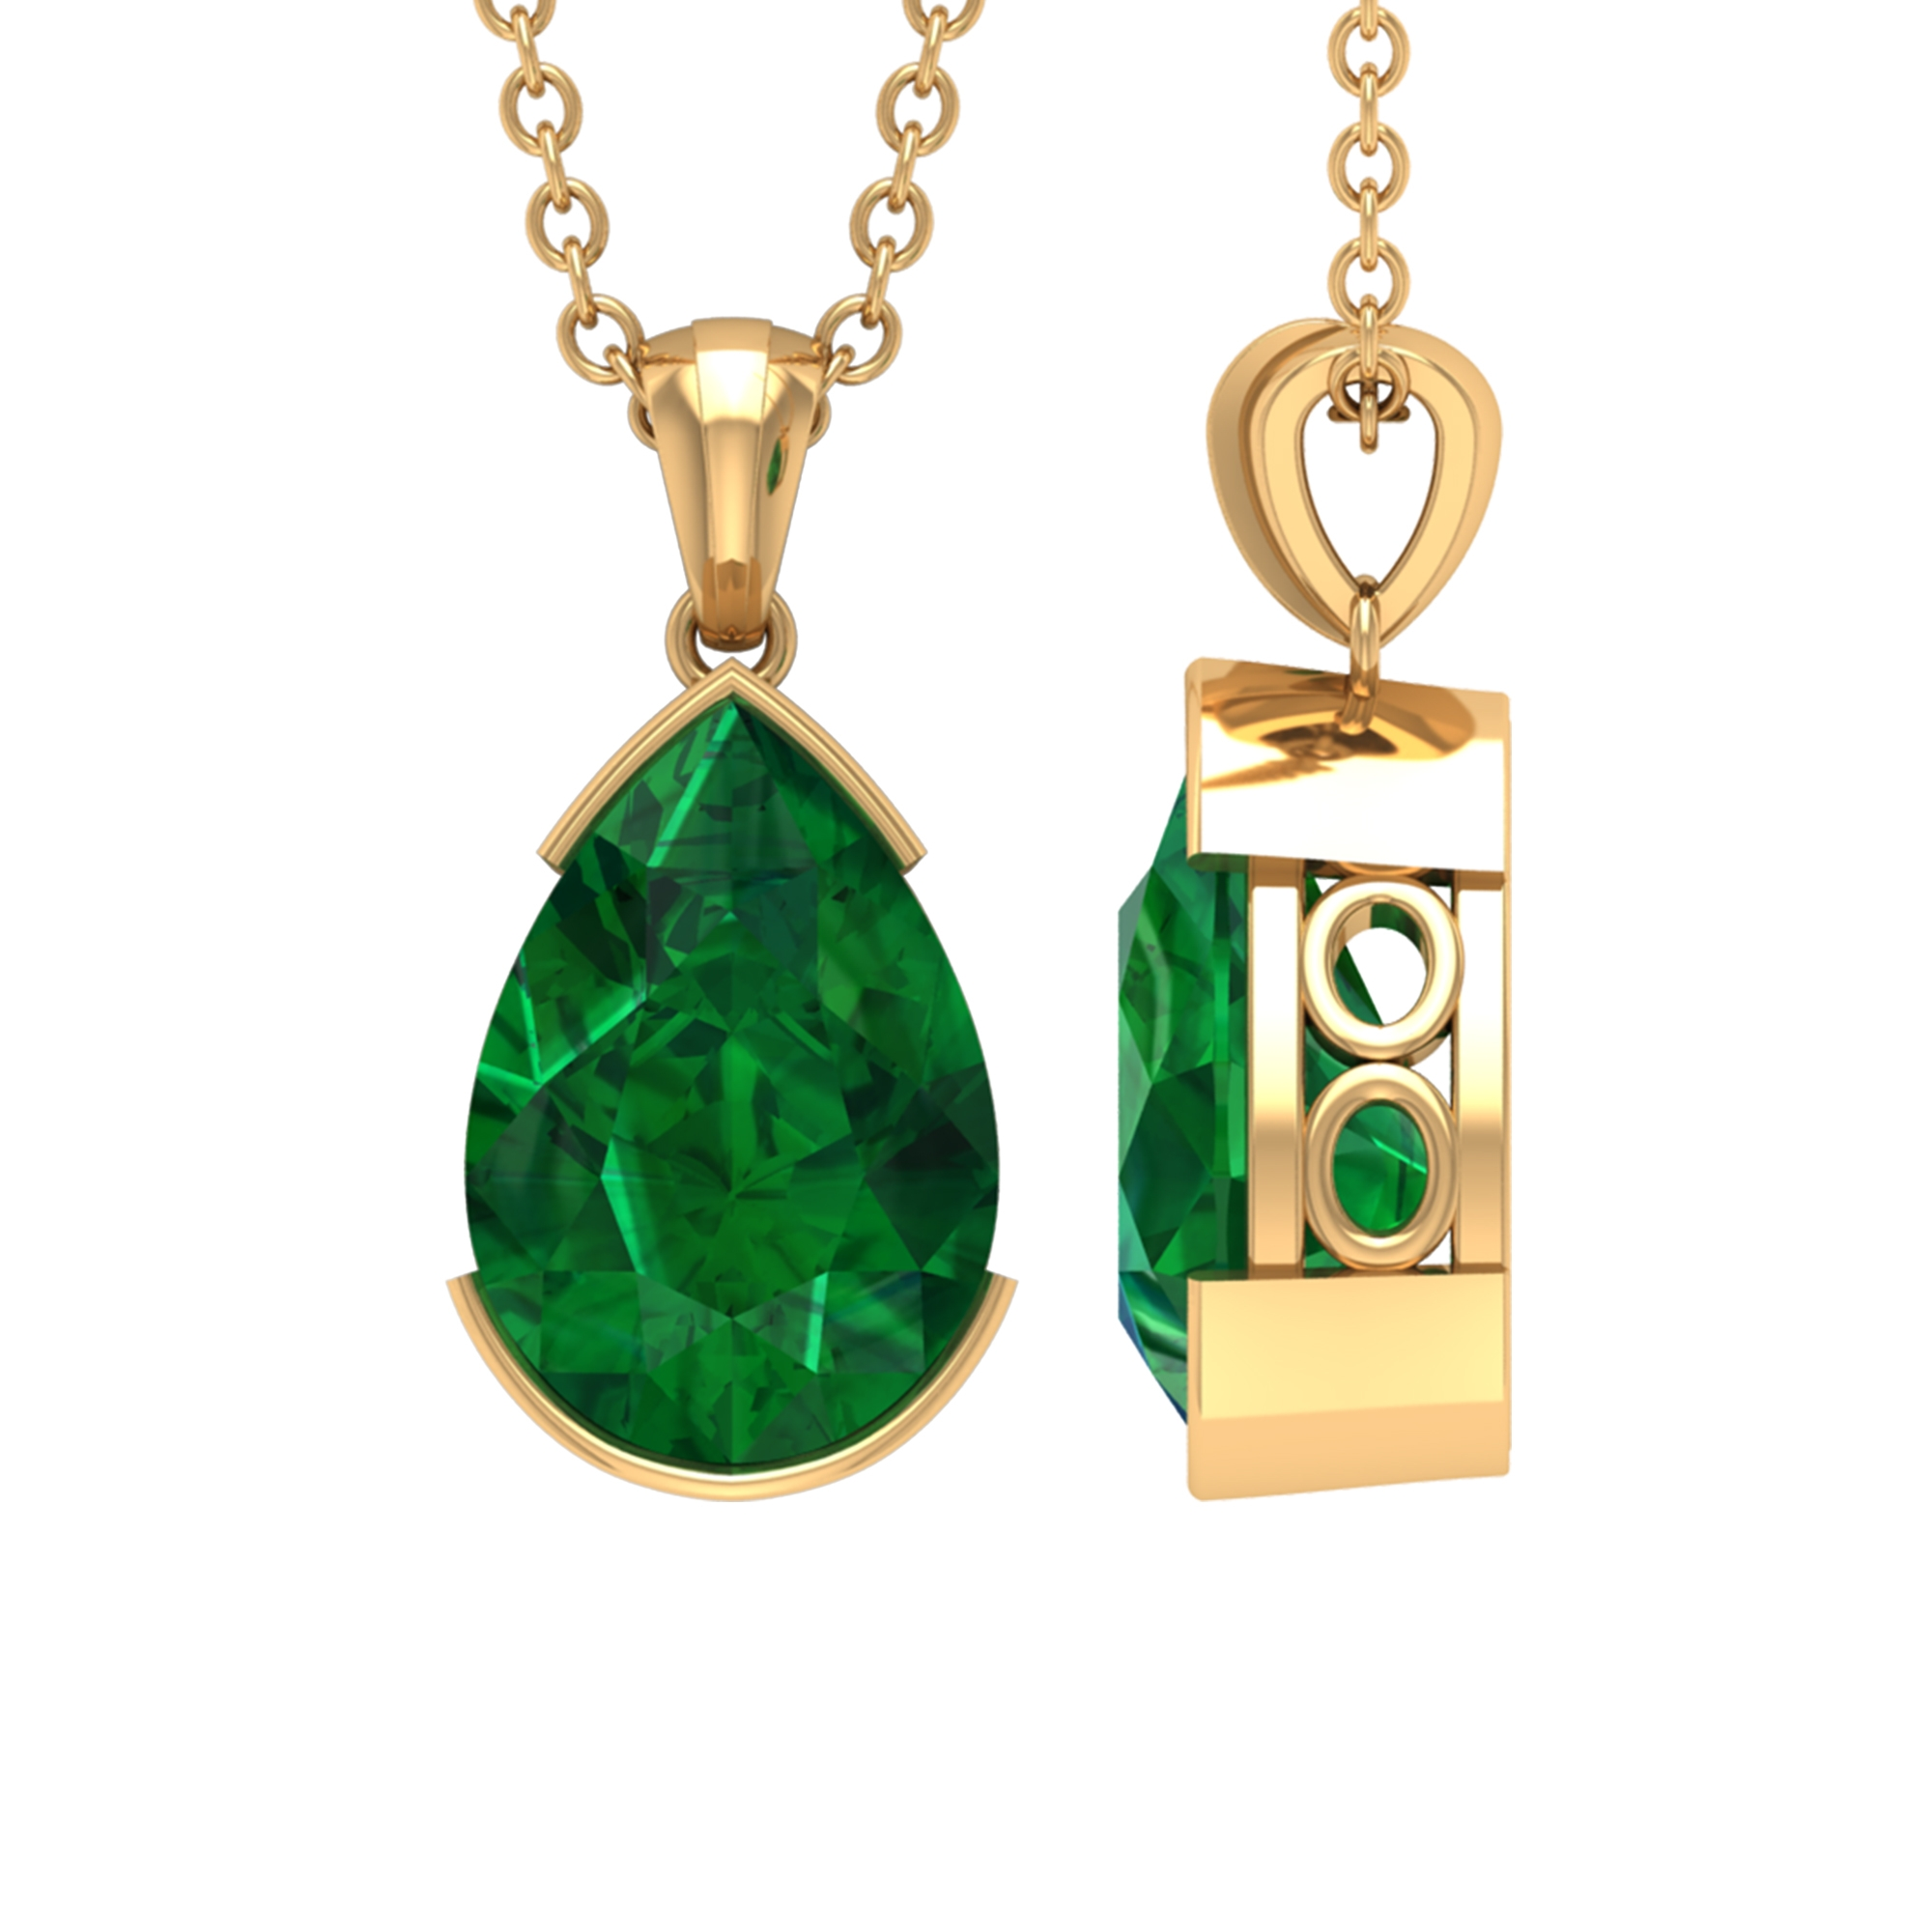 7X10 MM Pear Cut Emerald Solitaire Pendant in Half Bezel Setting with Bail